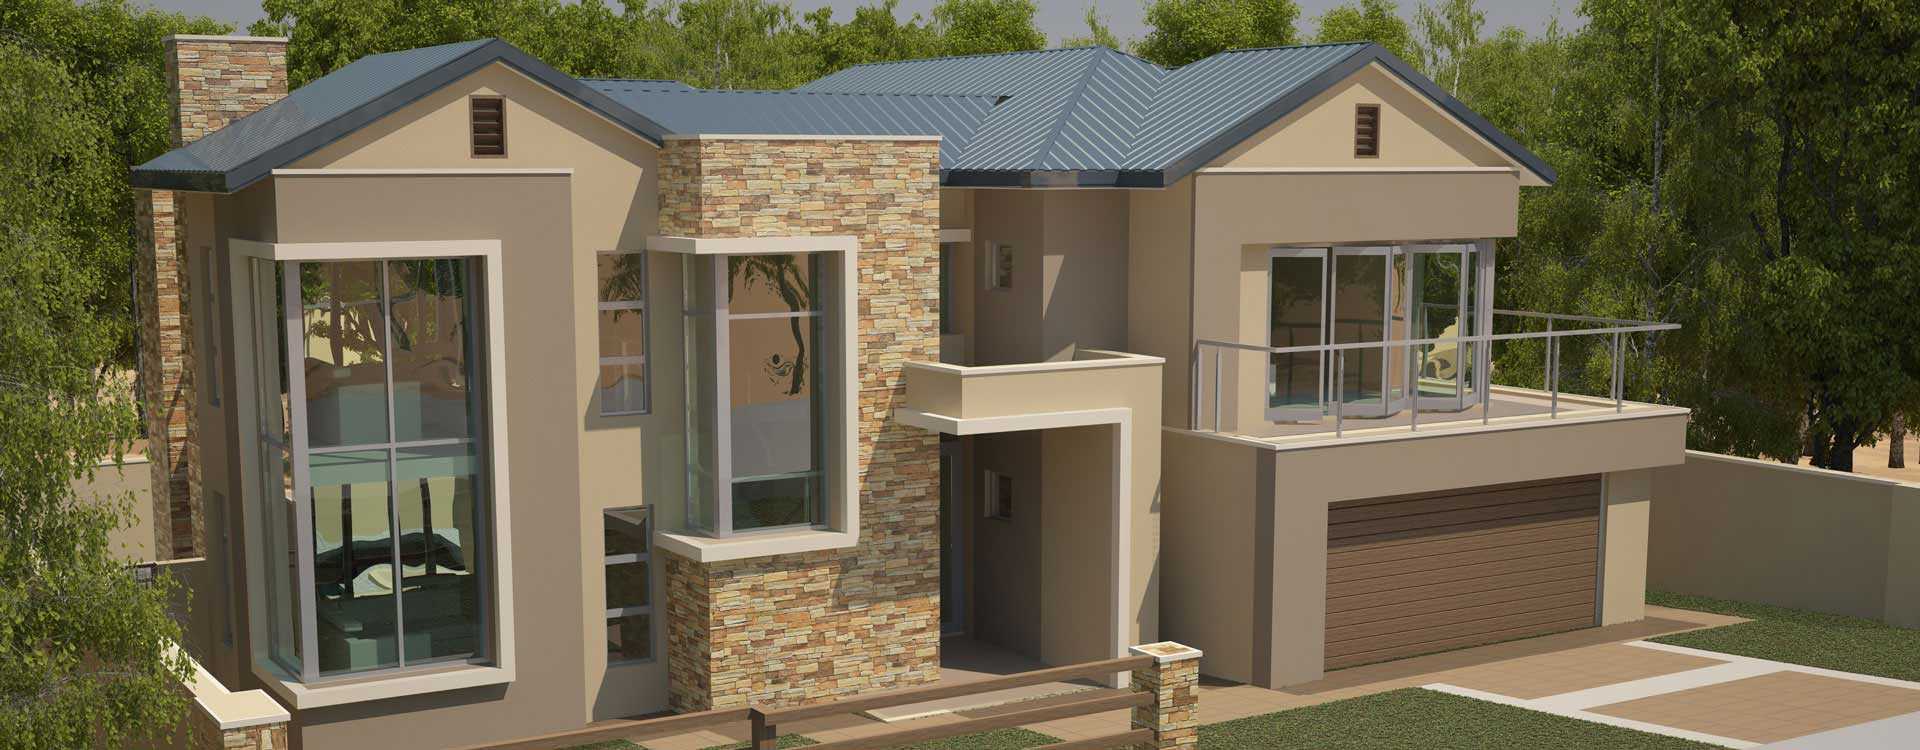 Modern contemporary style house plans 4 bedroom double storey floor plans modern